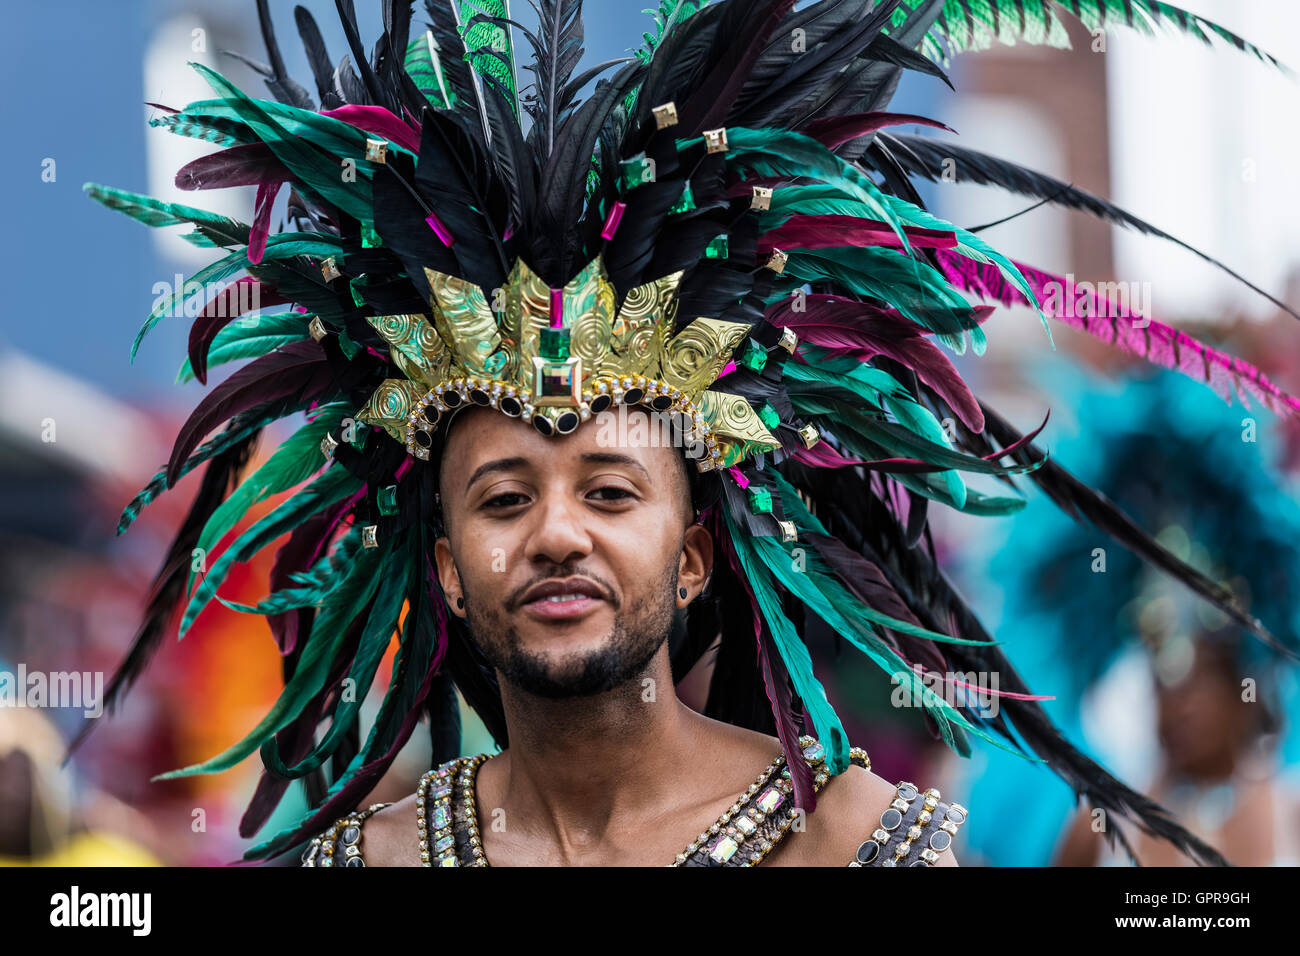 Black African man with a colourful black turquoise and green feather headdress at the Notting Hill Carnival in West - Stock Image